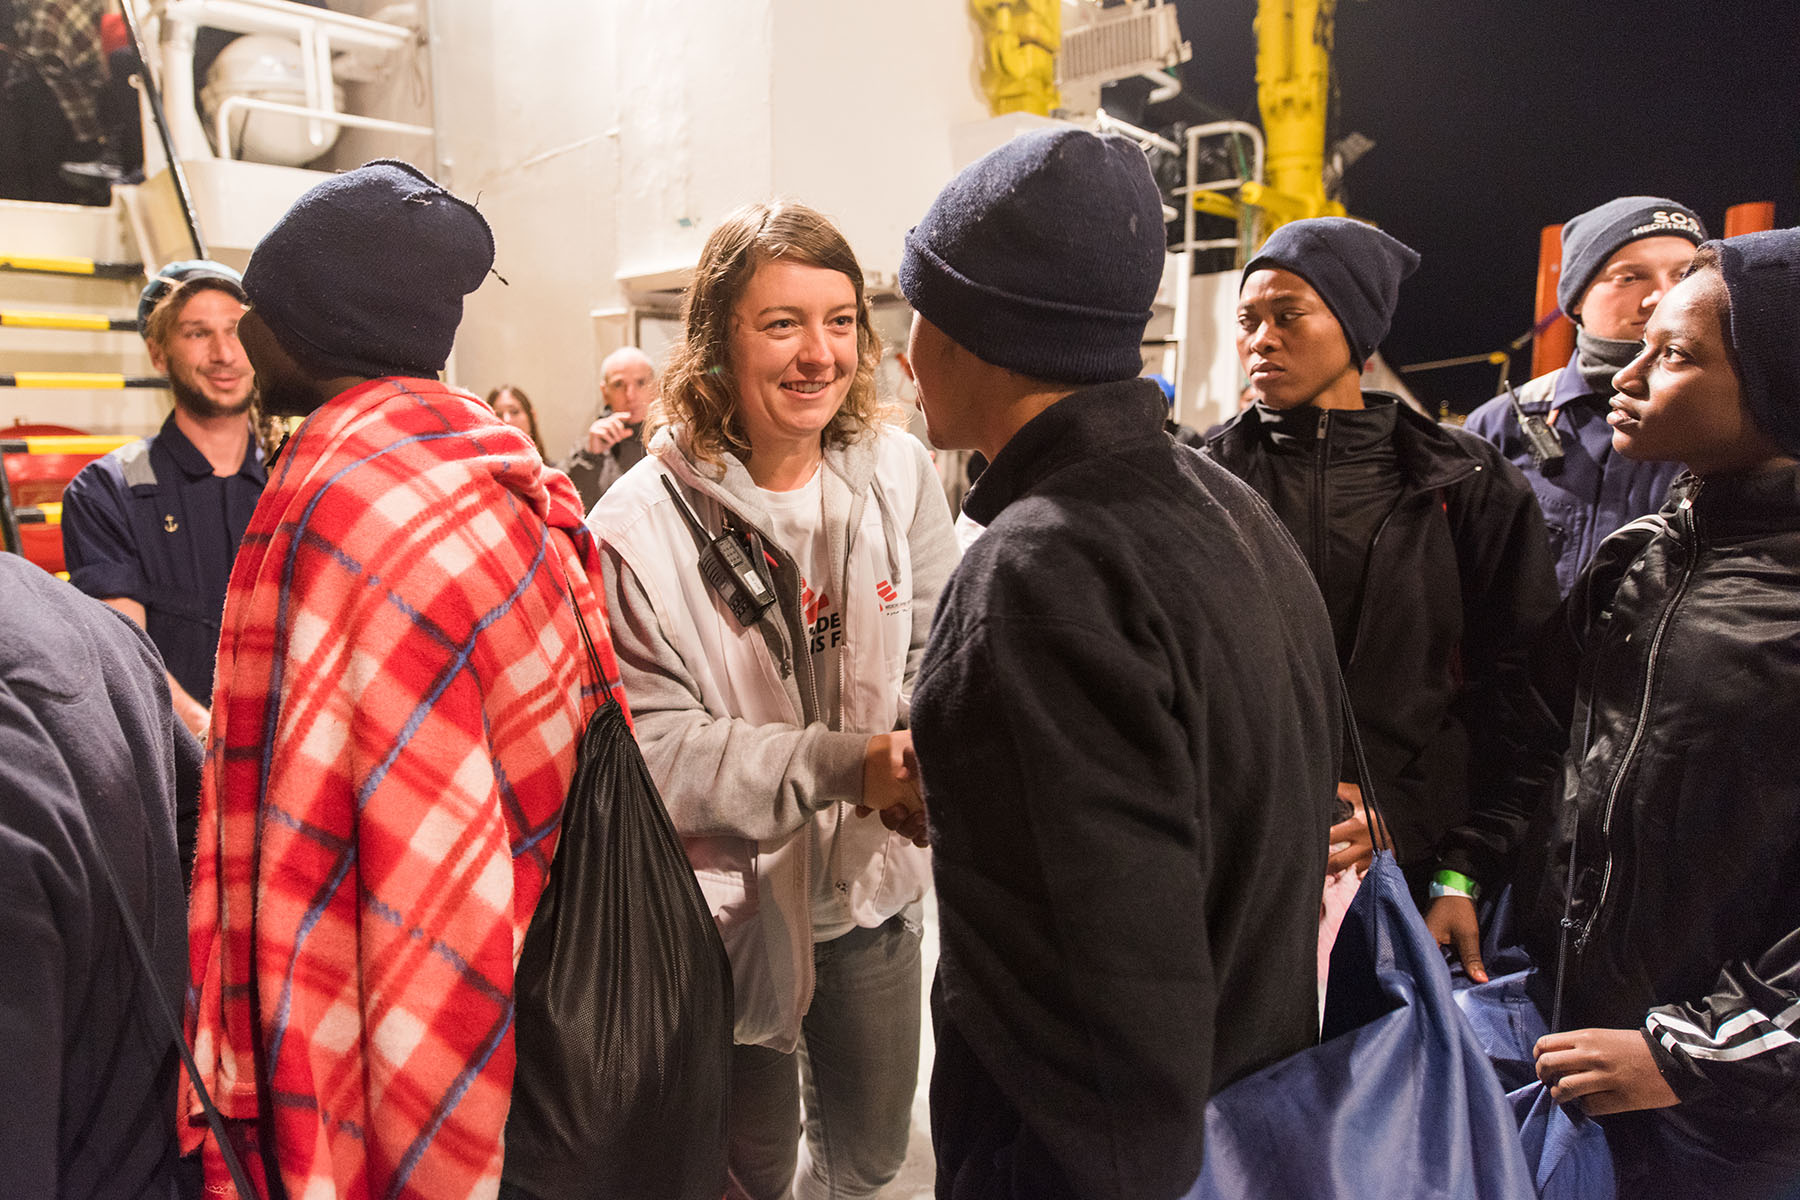 A Doctors Without Borders nurse greeting rescued people on a search-and-rescue vessel called the Aquarius.